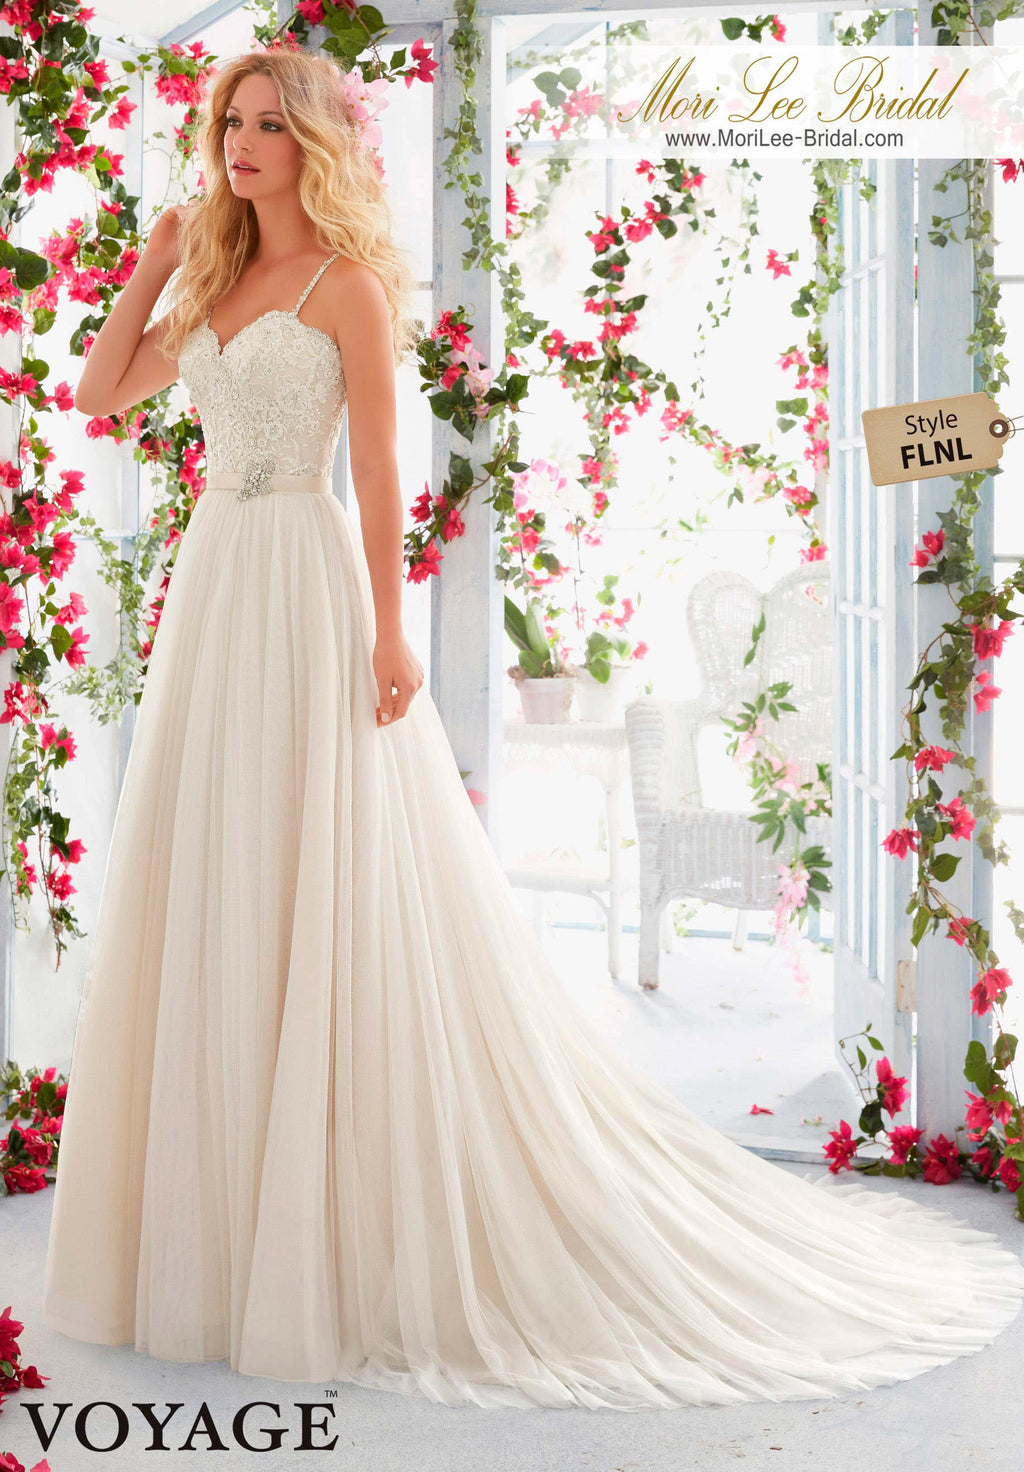 FLNL - Mori Lee Bridal